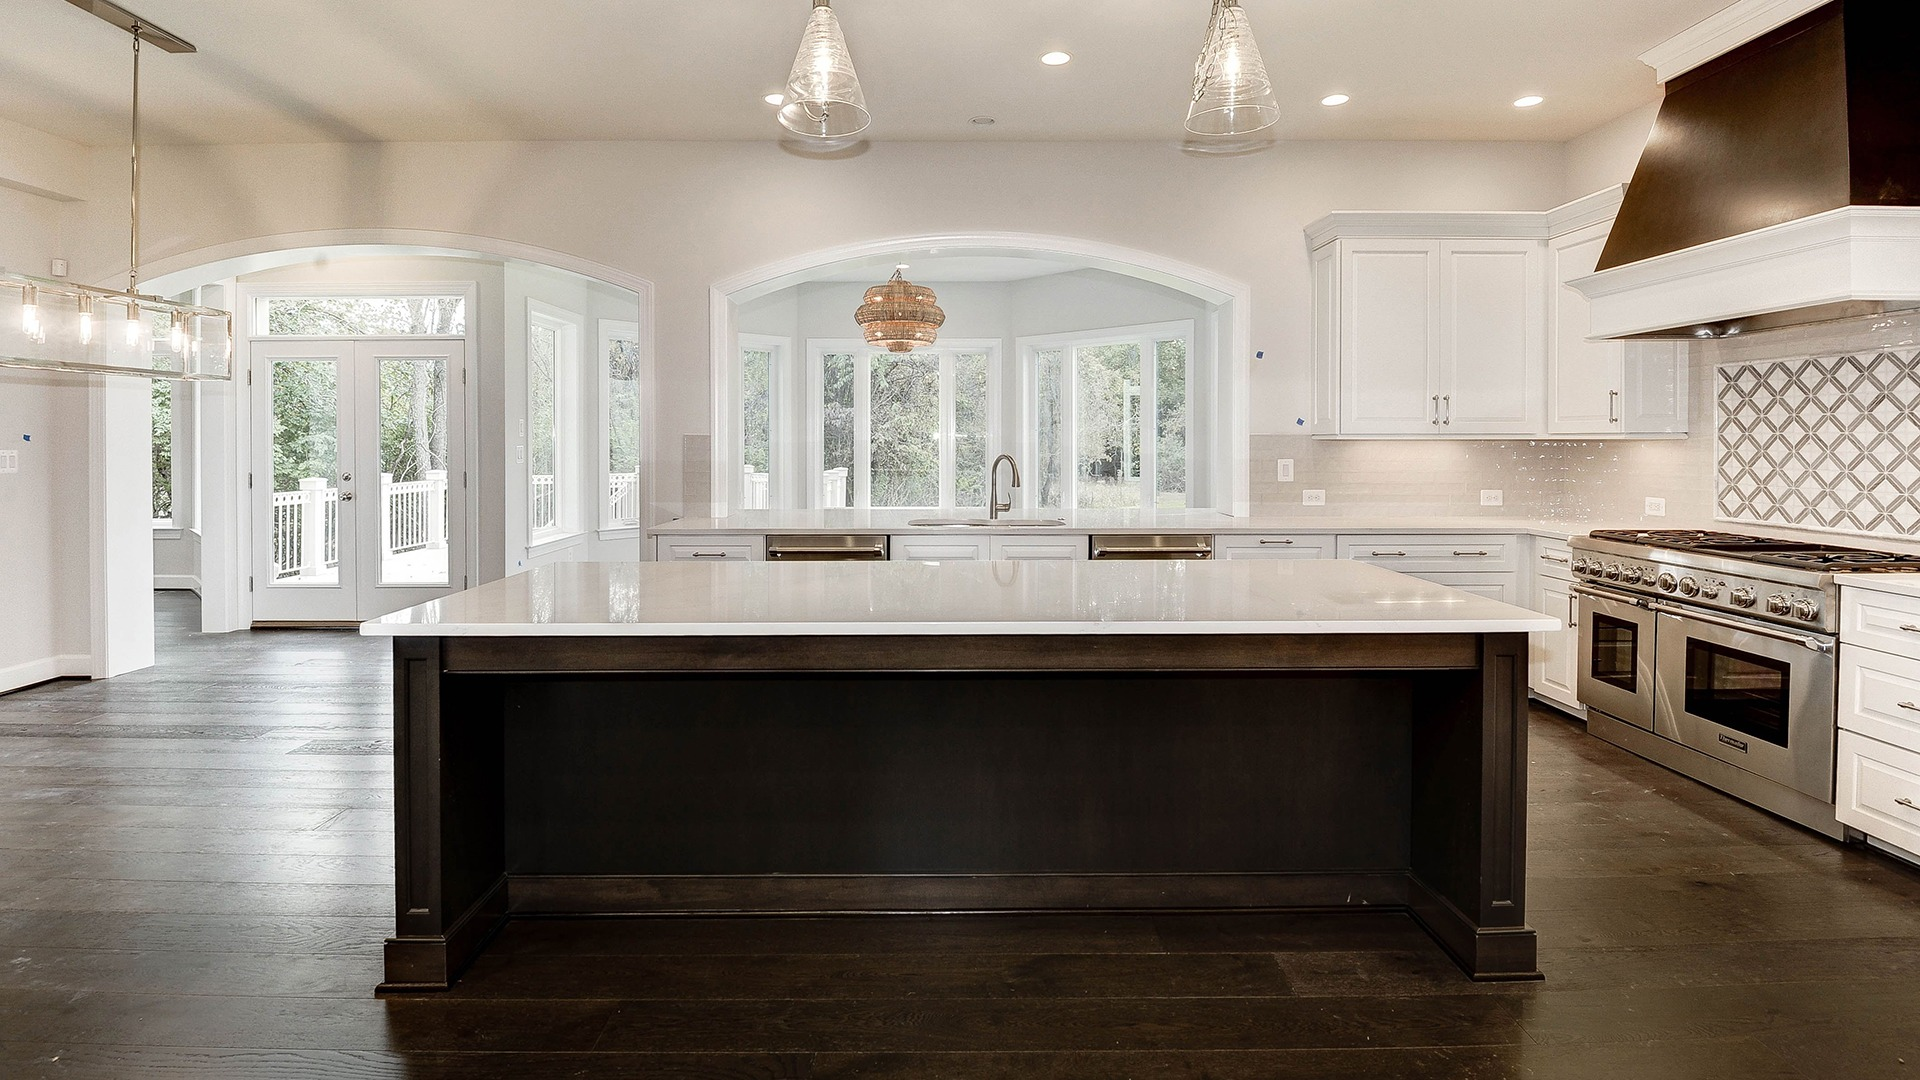 The dramatic sunlit opening between the Optional Sunroom and Kitchen in the Summerwood Series Winthrop